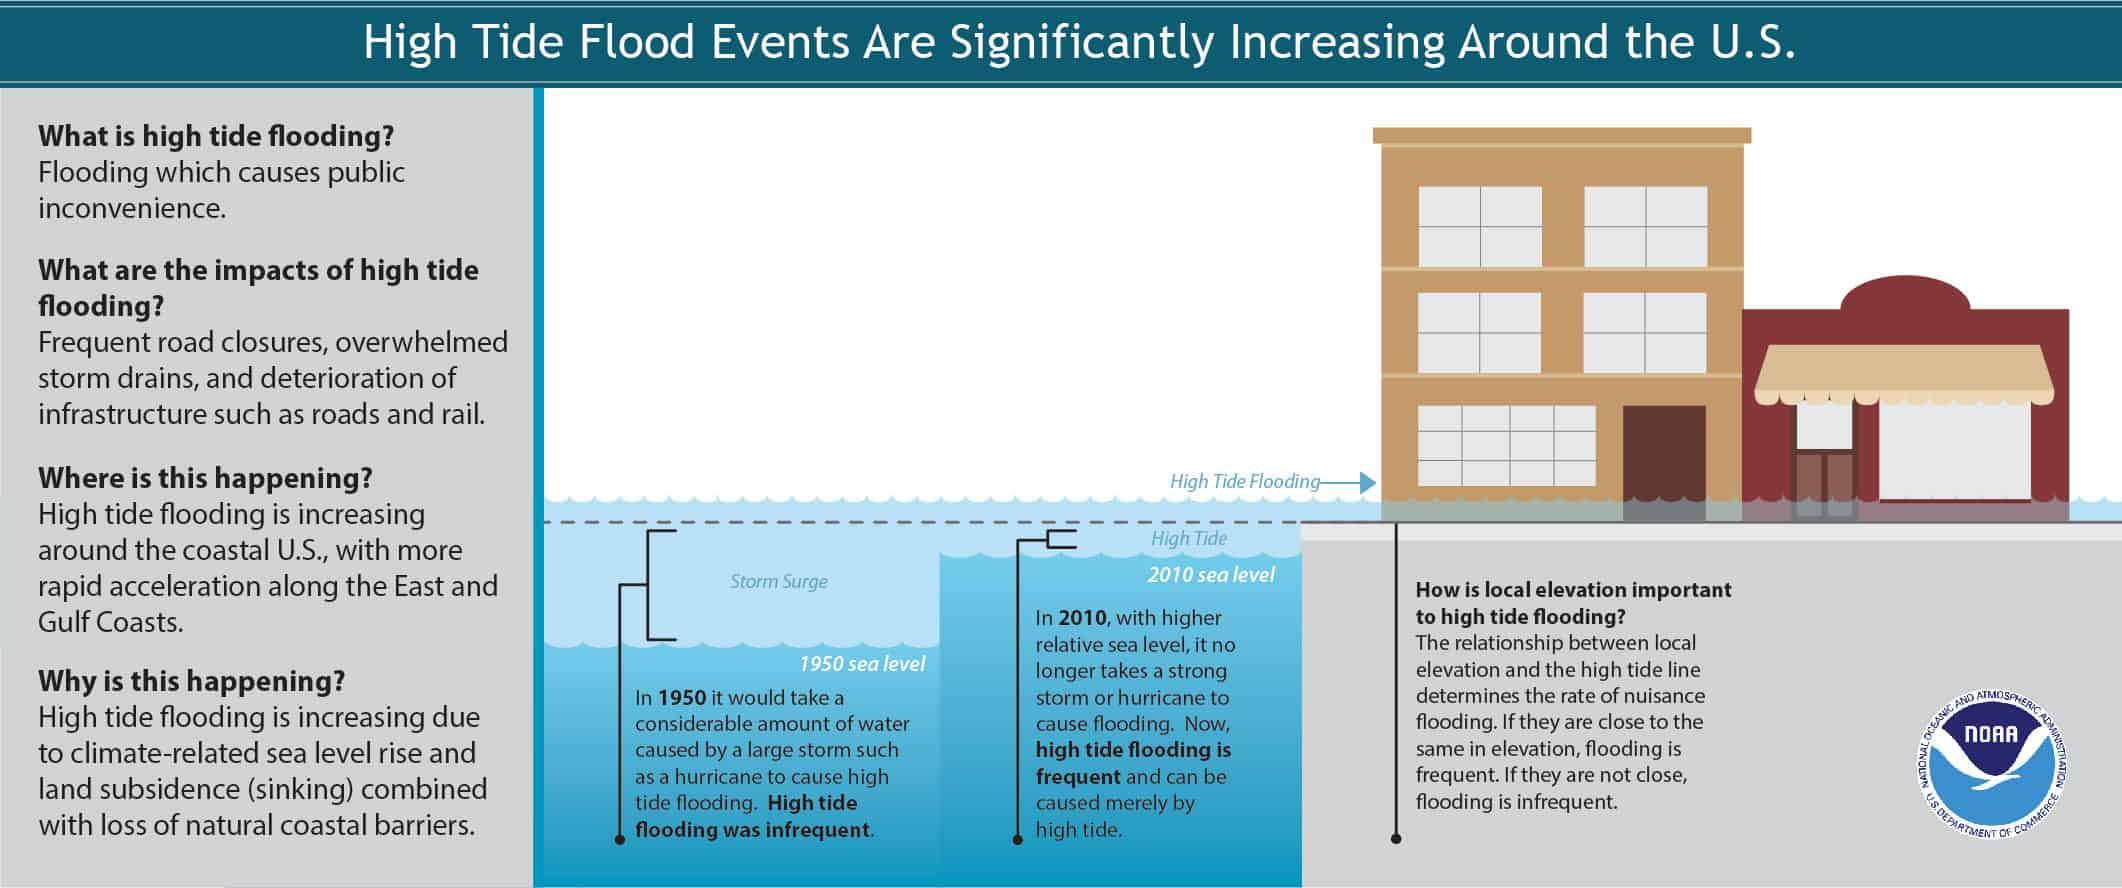 High tide flooding events have increased around the U.S., but especially off the East Coast.   Download PDF